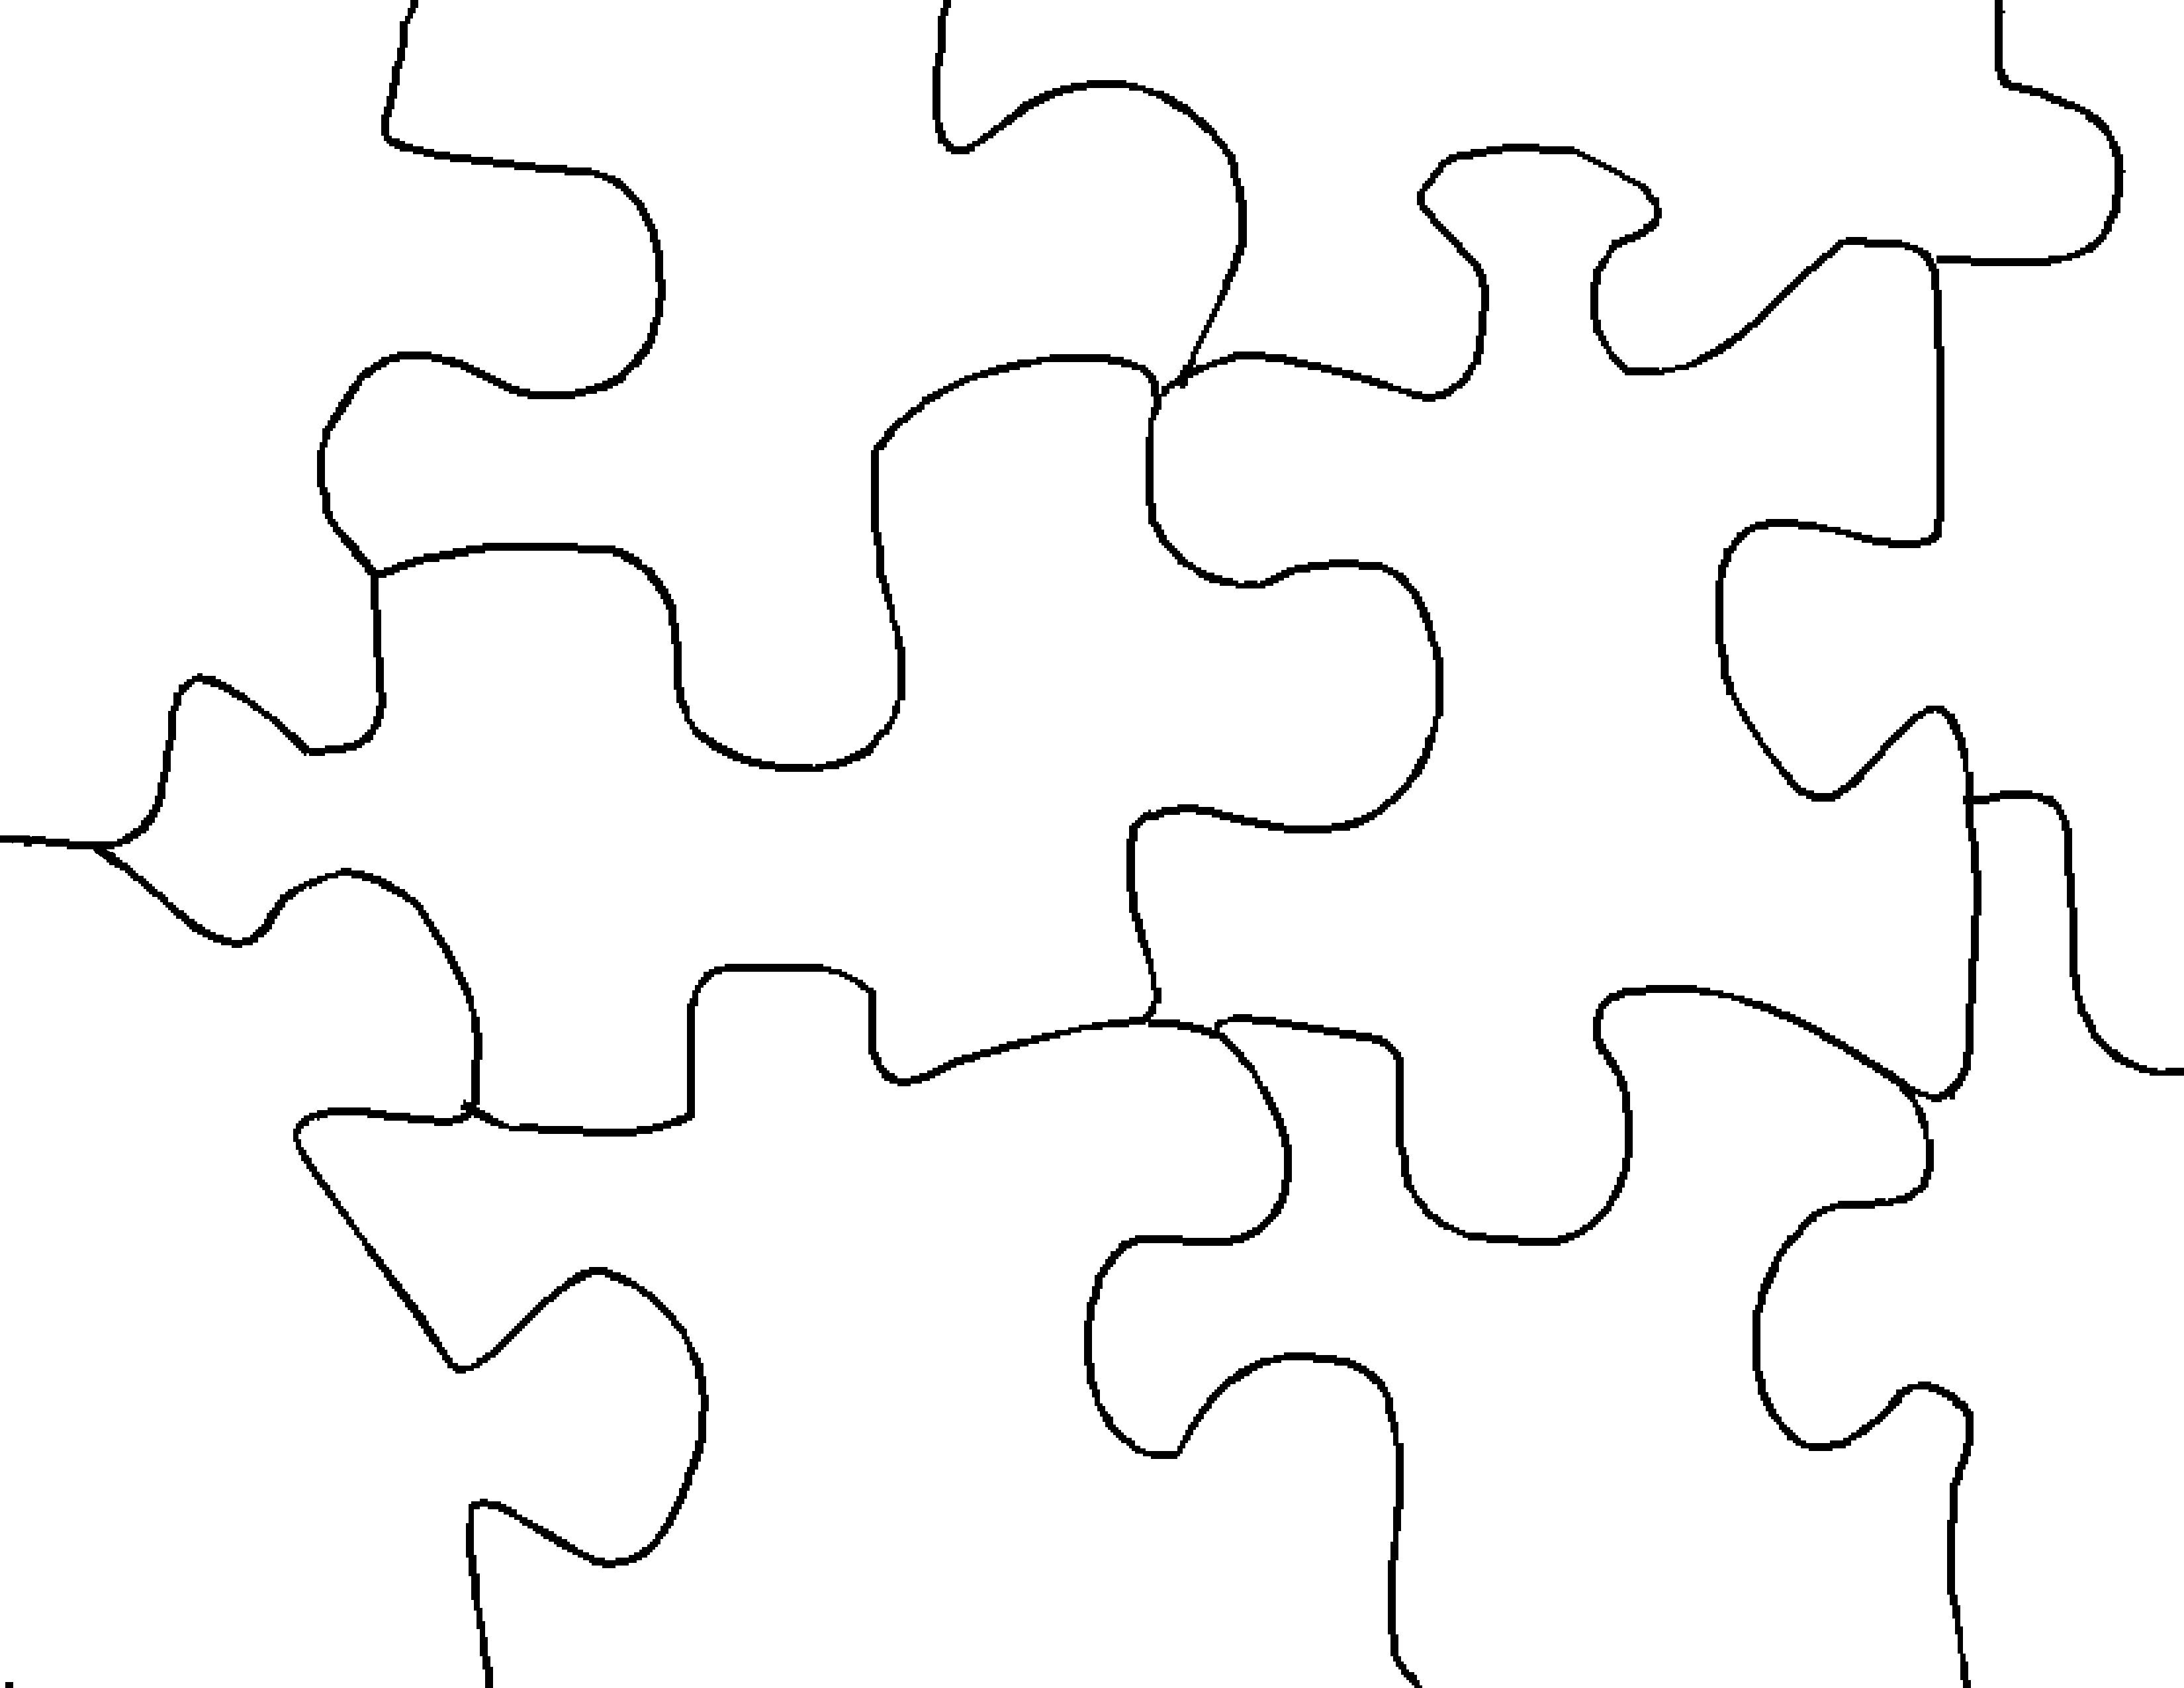 Make Jigsaw Puzzle - Printable Jigsaw Puzzle Paper